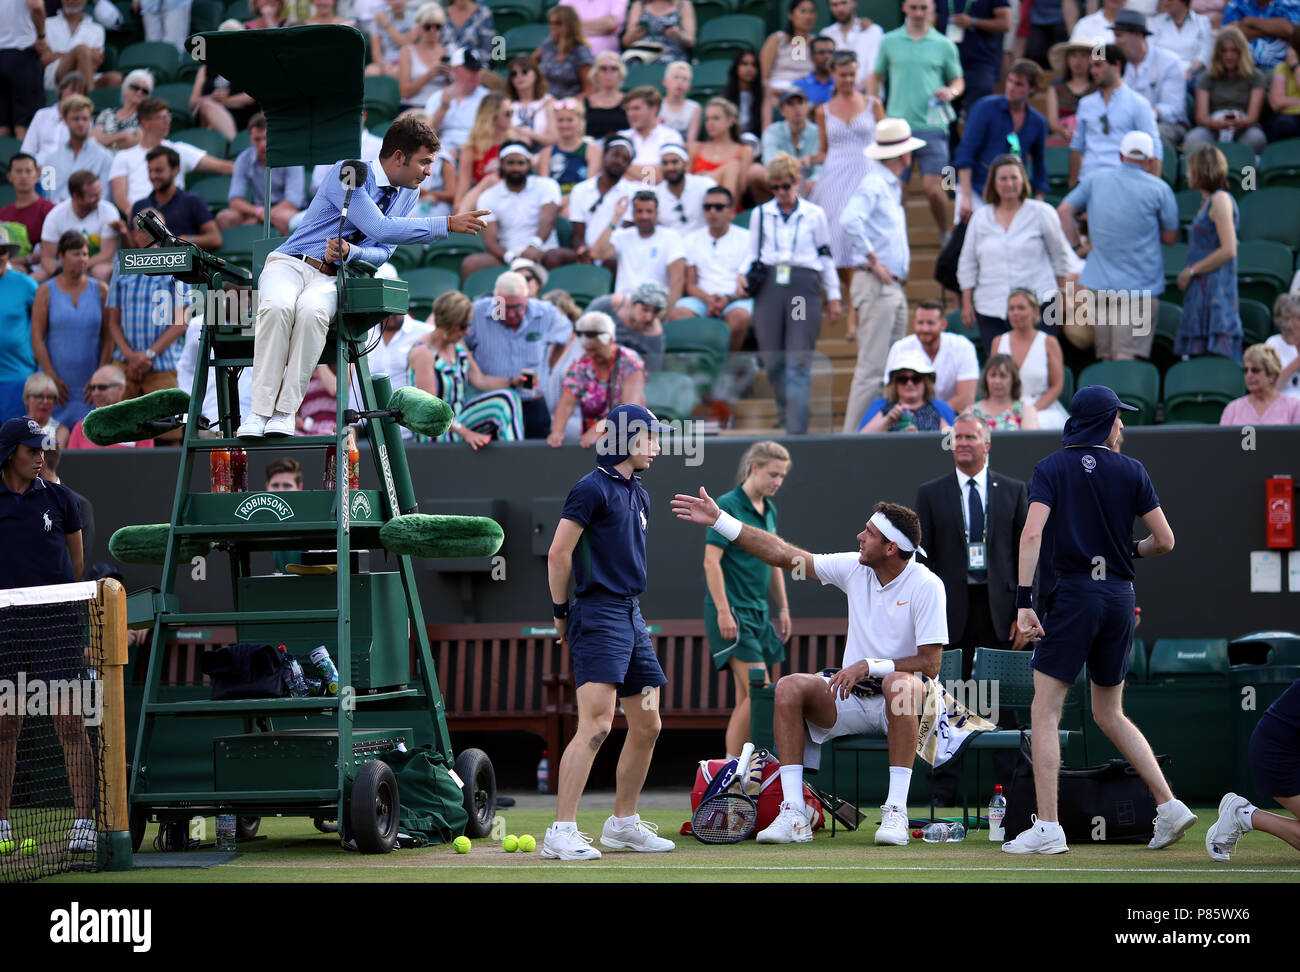 Juan Martin Del Potro speaks to the umpire after receiving a code violation on day seven of the Wimbledon Championships at the All England Lawn Tennis and Croquet Club, Wimbledon. - Stock Image